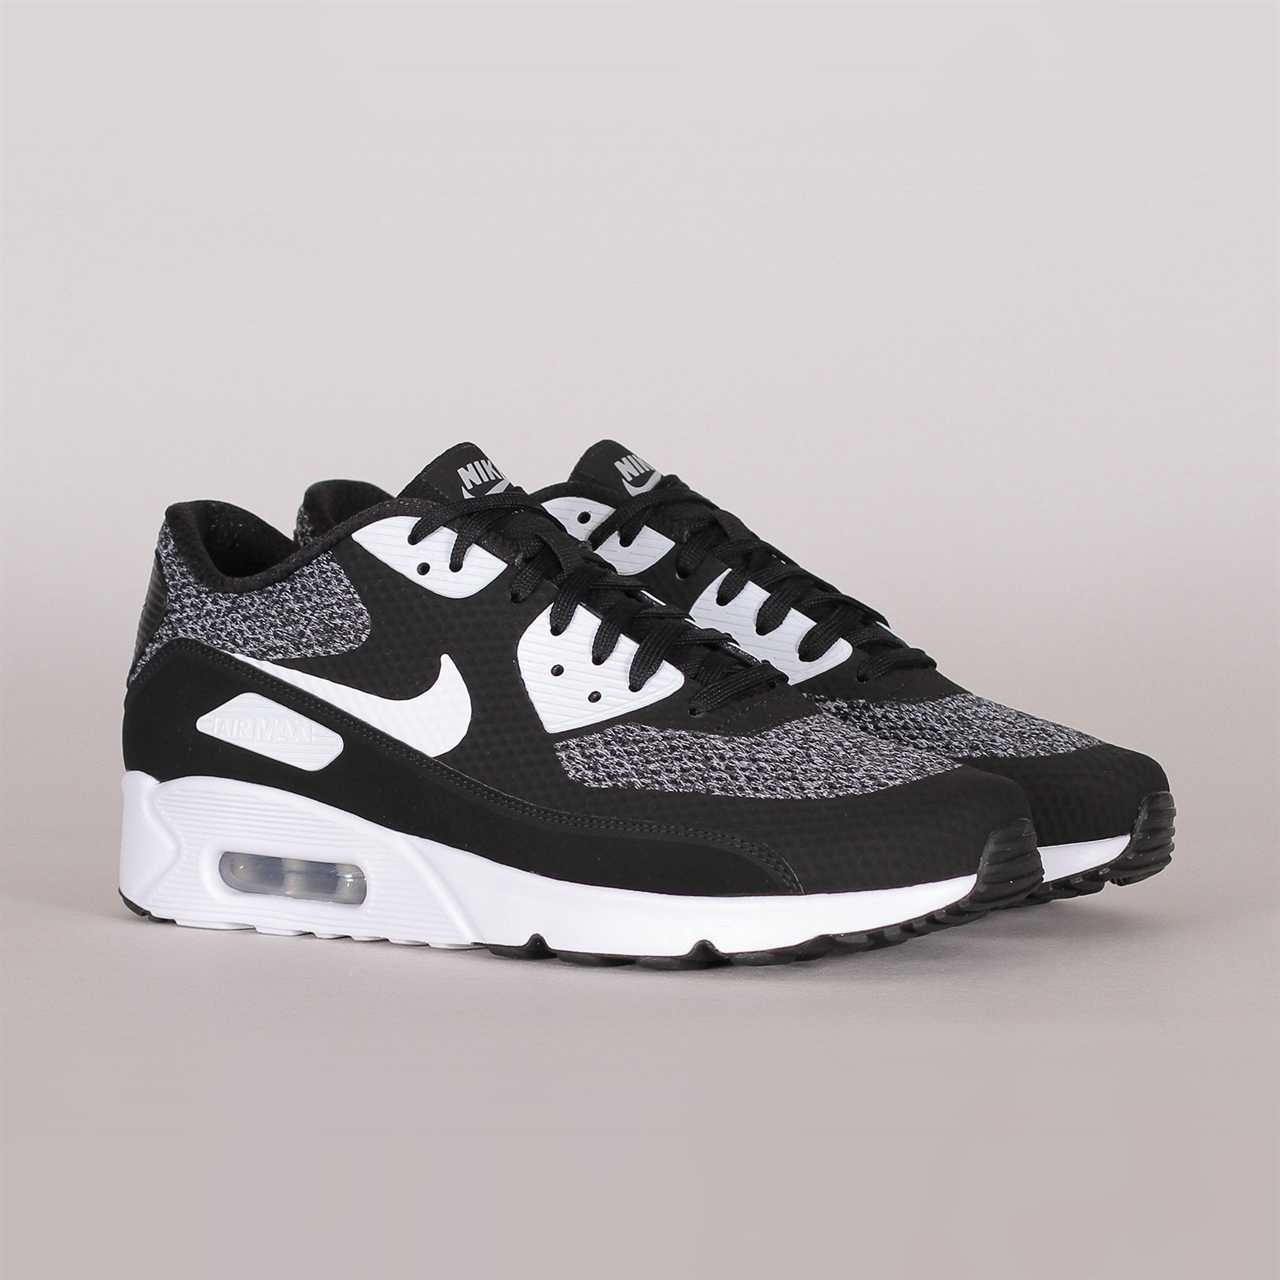 on sale d88d6 559e5 Air Max 90 Ultra 2.0 Essential (875695-019)